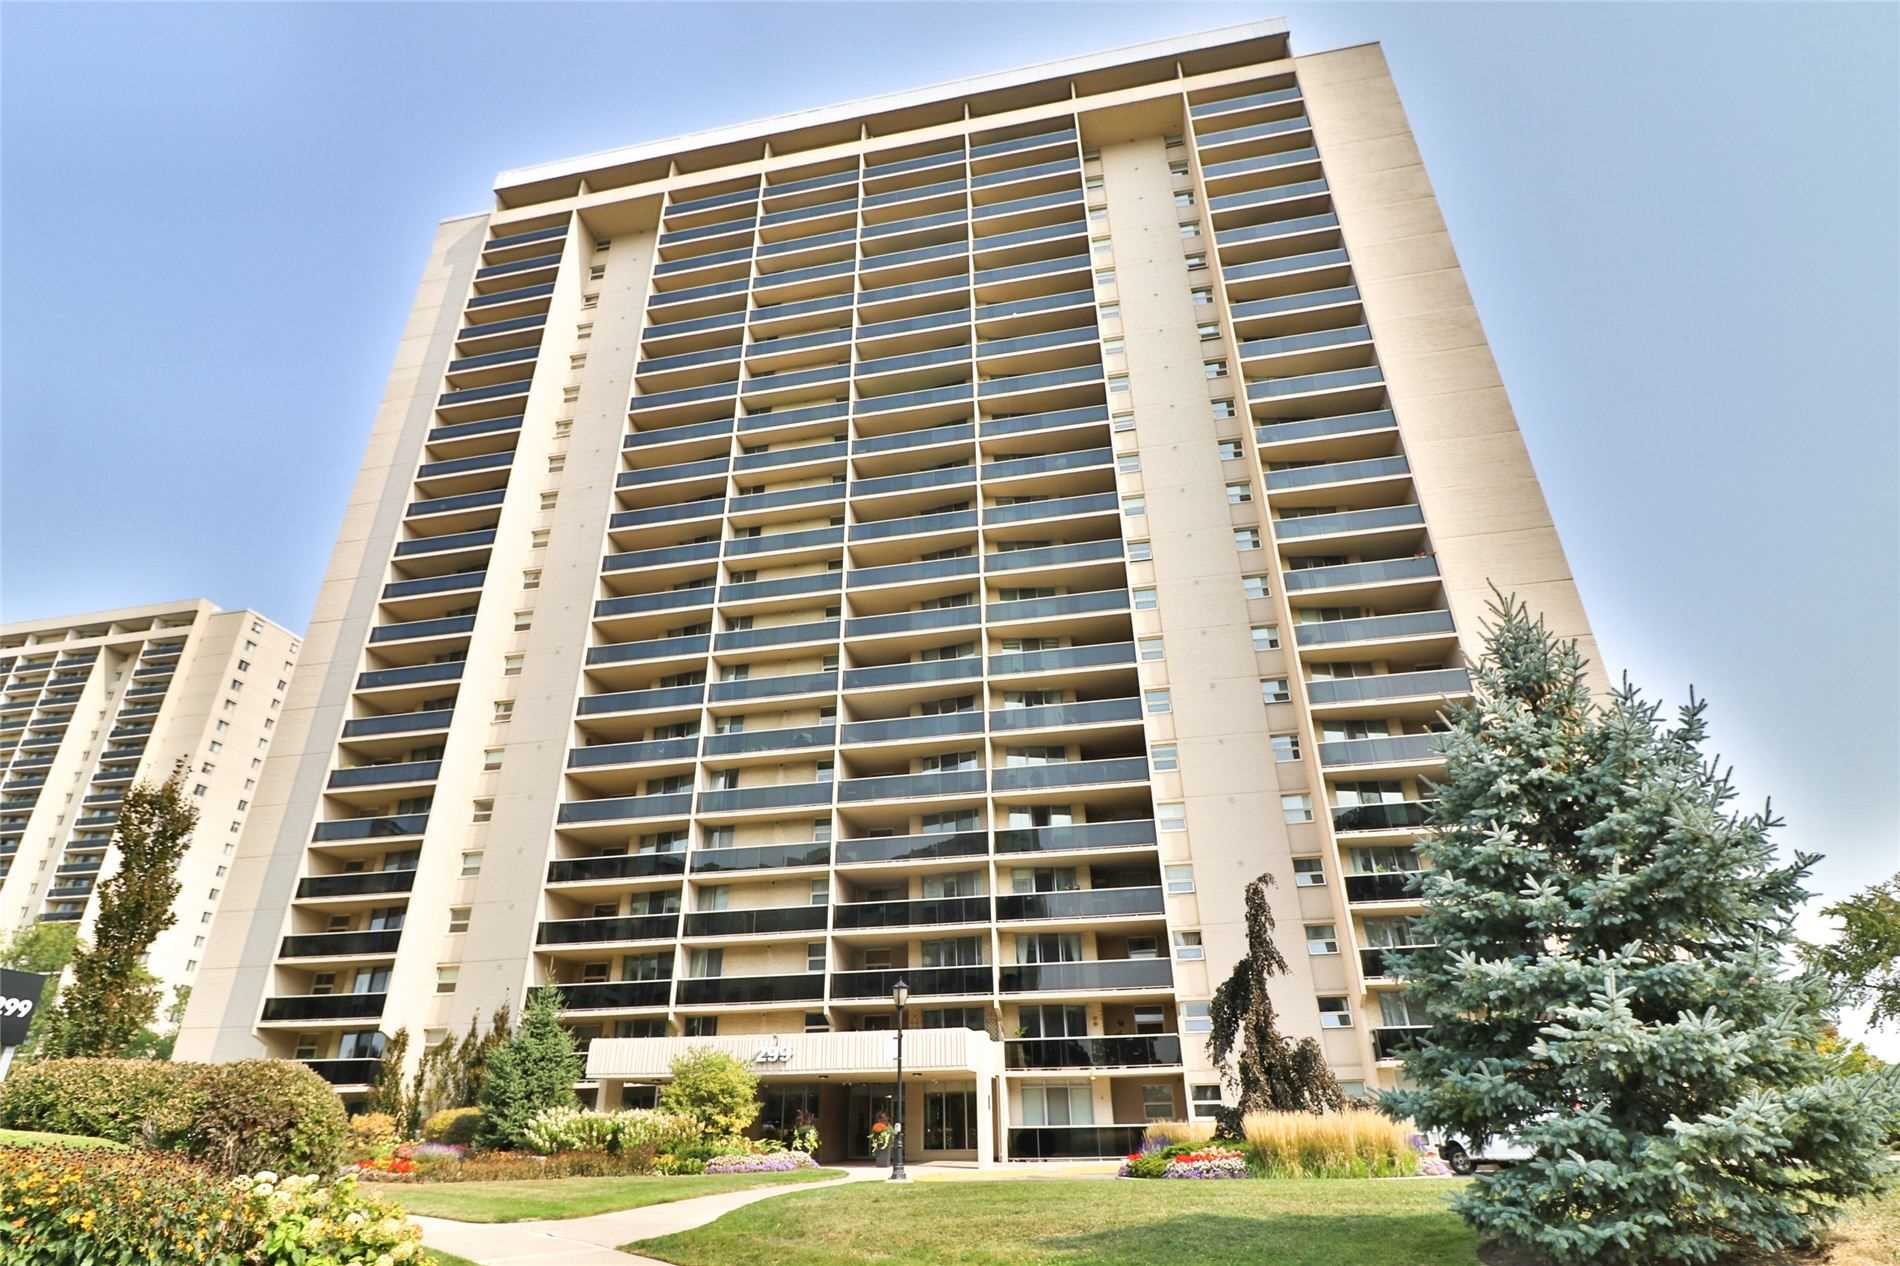 299 Mill Rd, Toronto, Ontario M9C4V9, 3 Bedrooms Bedrooms, 5 Rooms Rooms,2 BathroomsBathrooms,Condo Apt,For Sale,Mill,W4922237